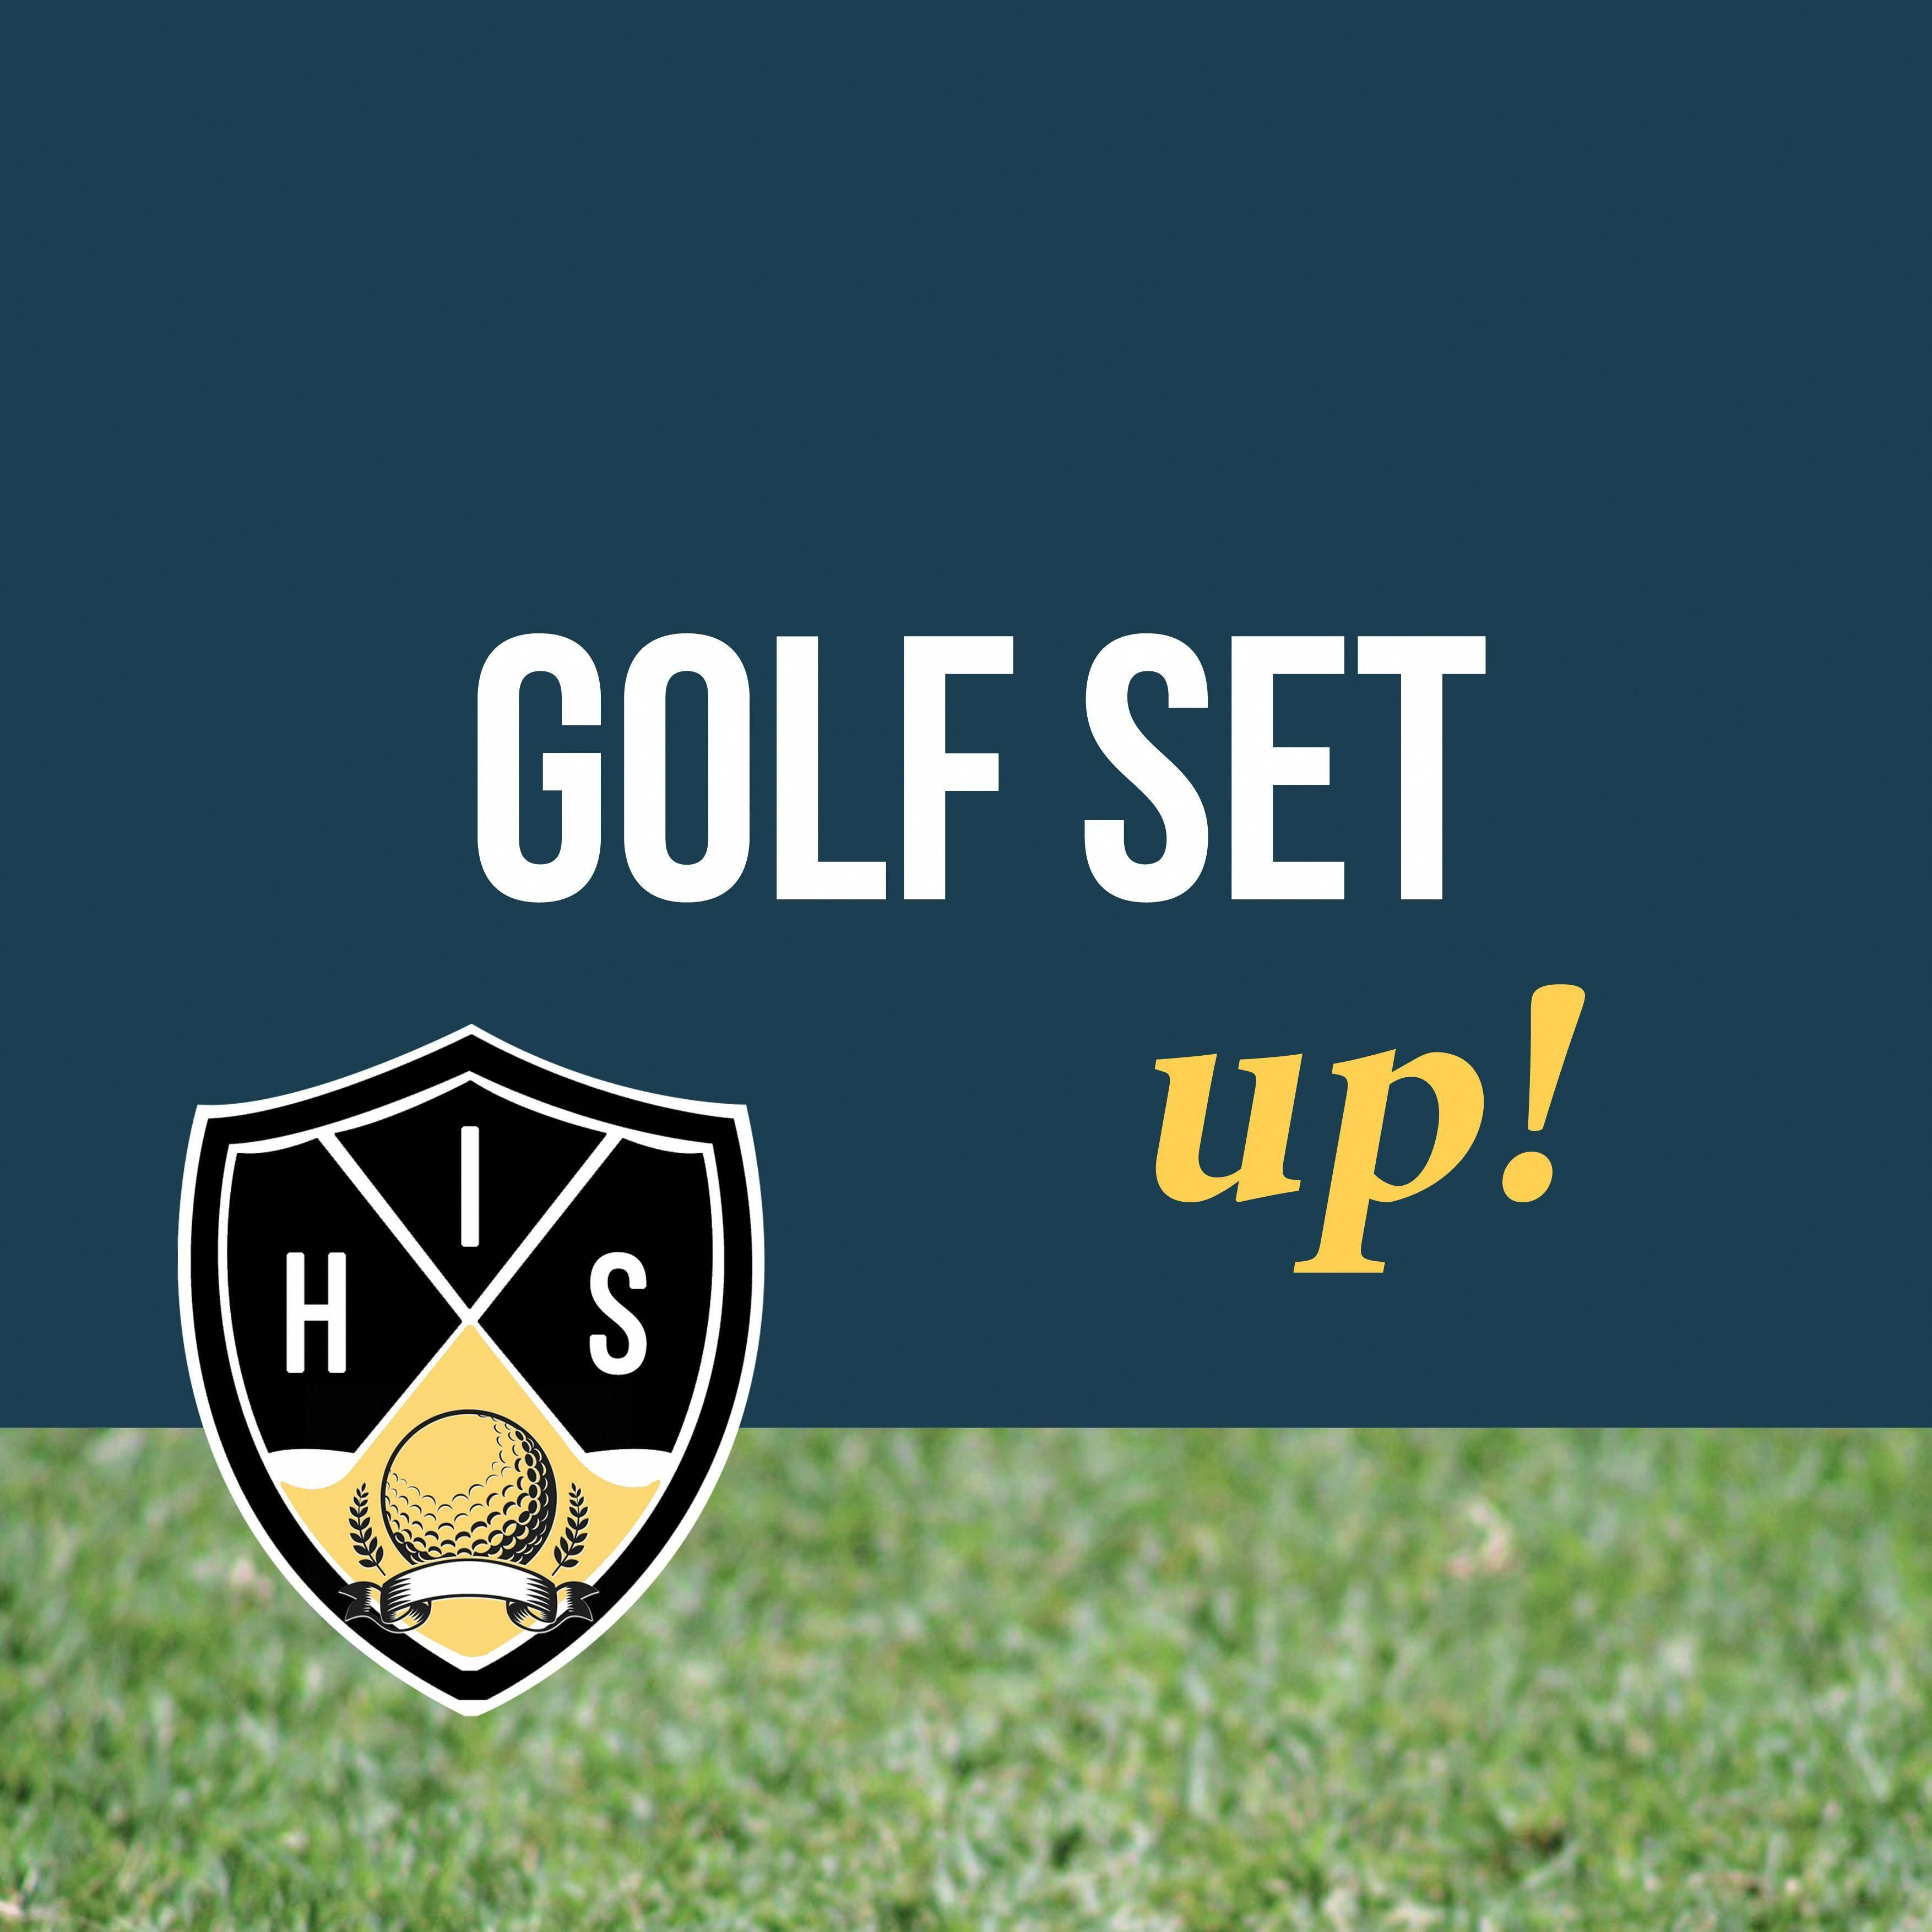 A collection of the best golf set up tips to improve your